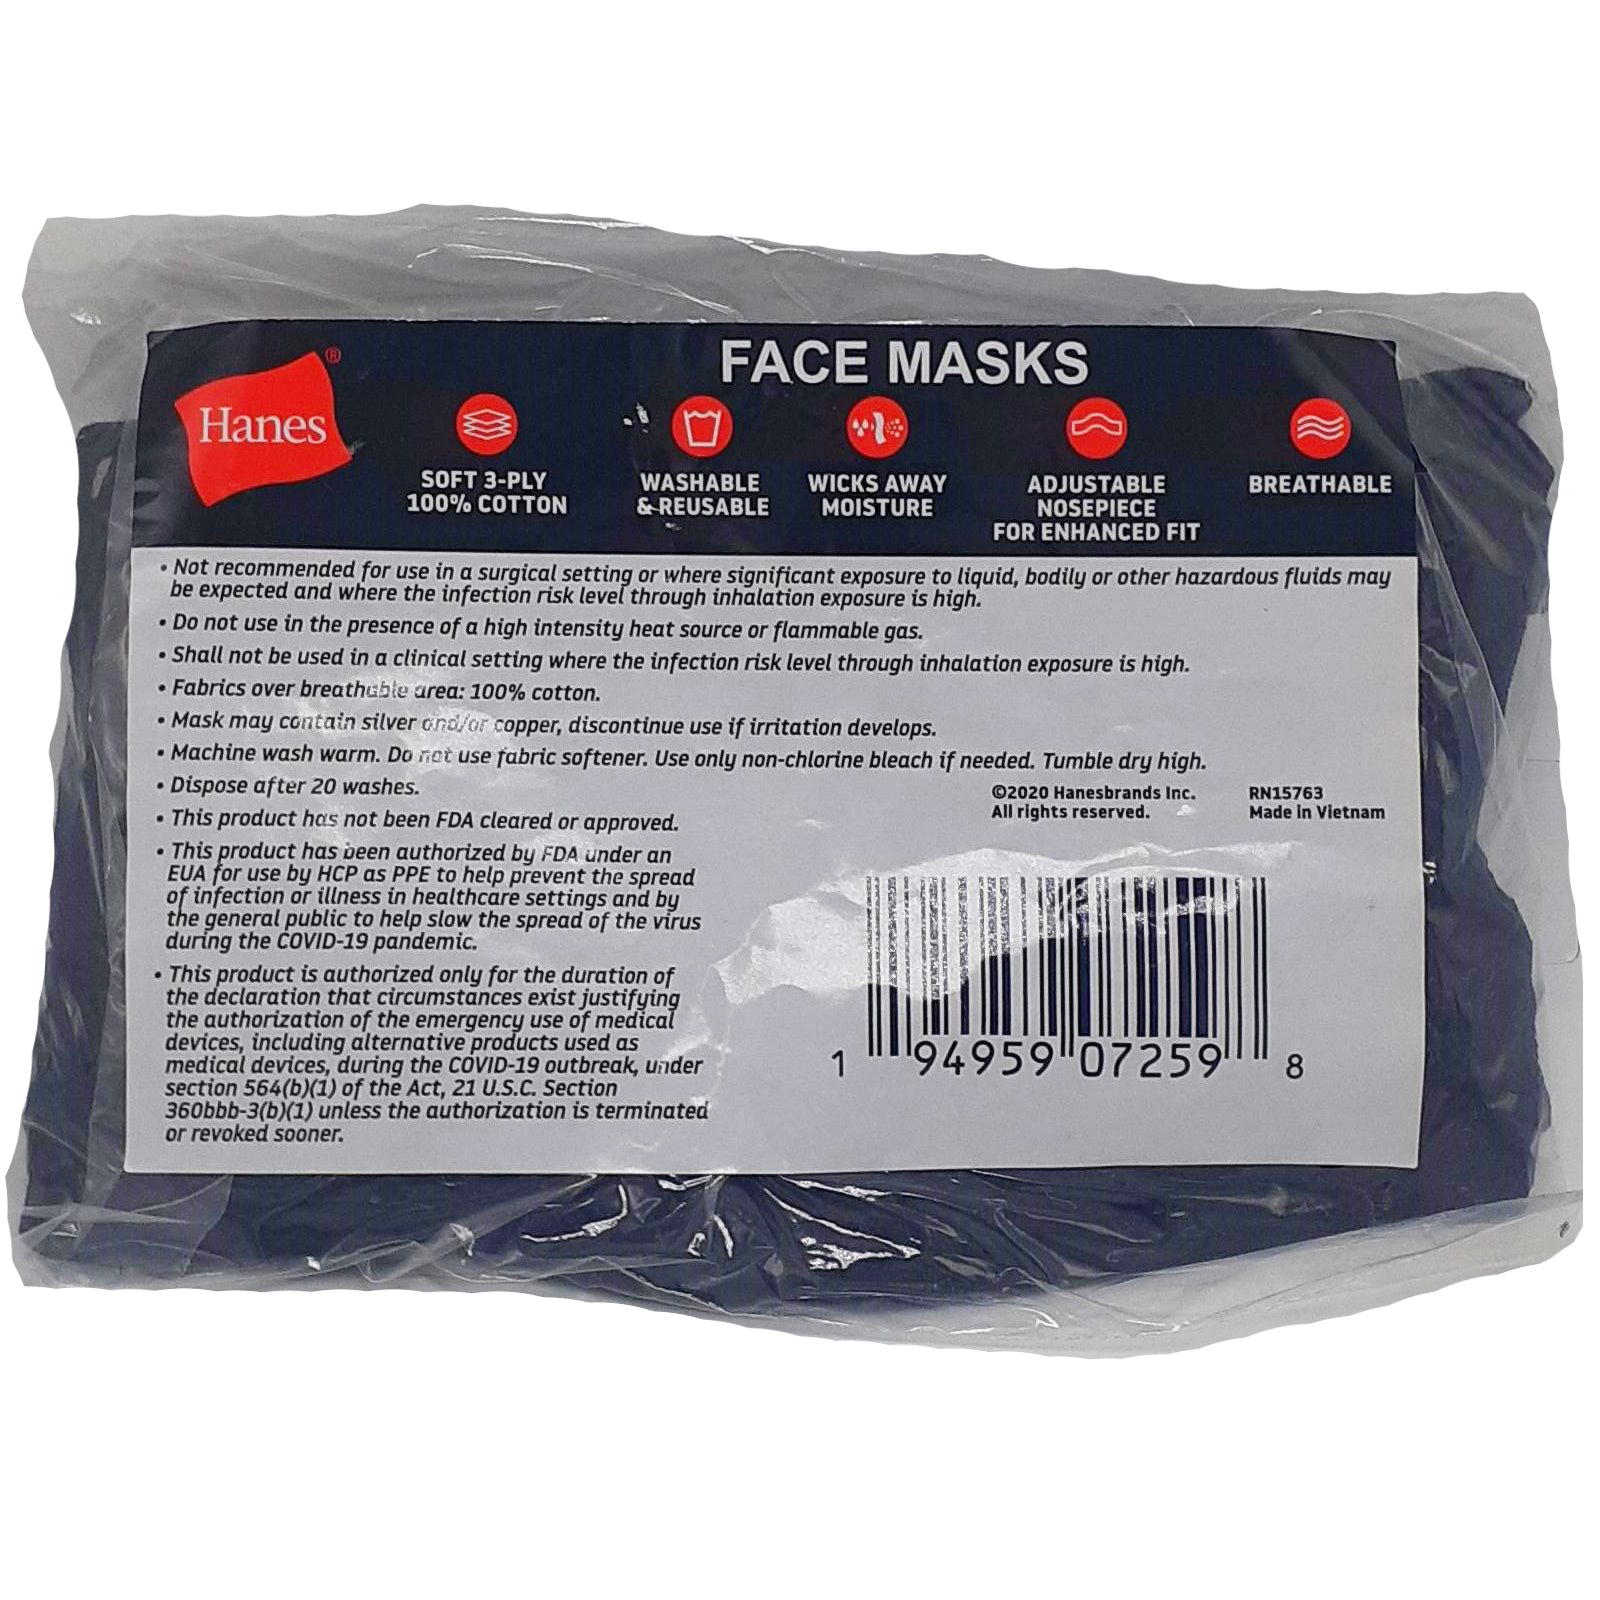 Hanes Reusable Face Mask 5ct thumbnail